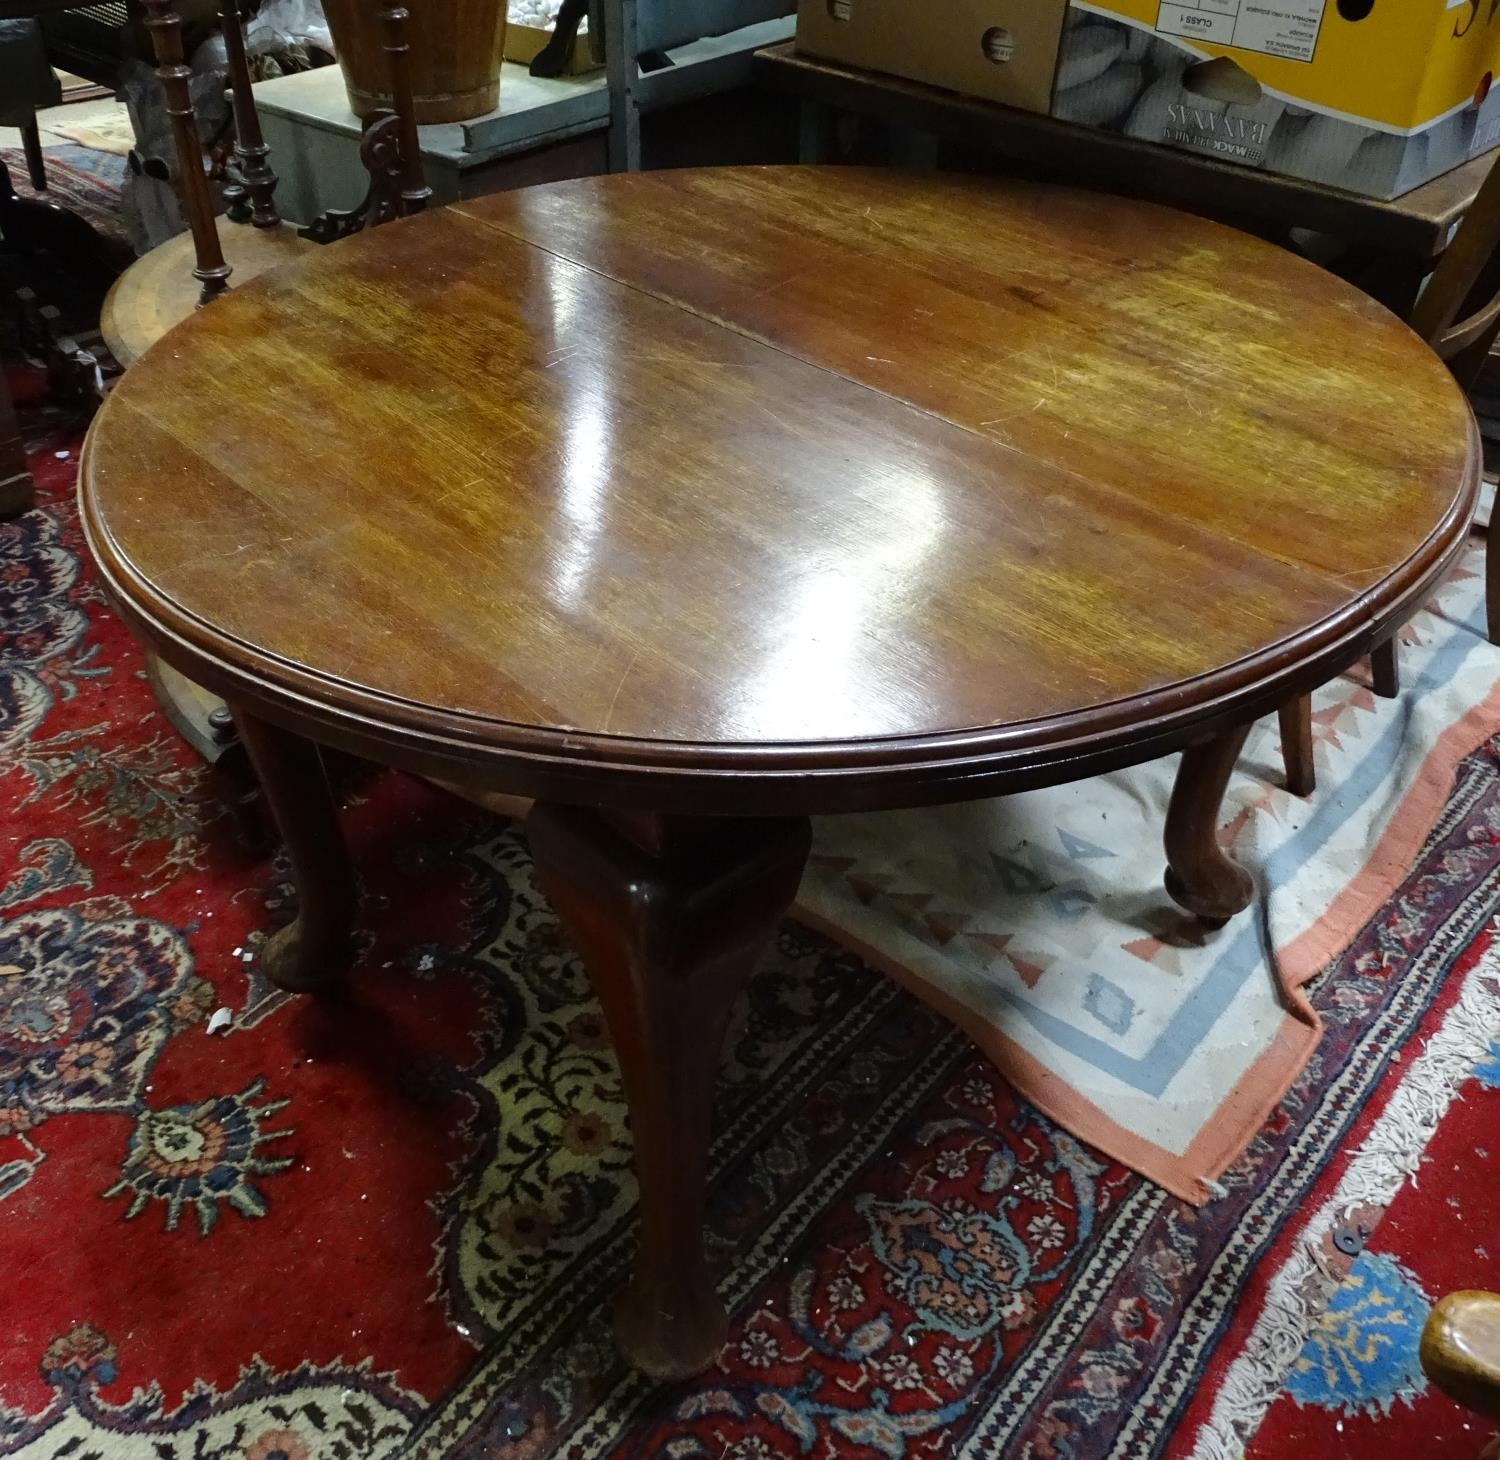 A mahogany oval dining table with cabriole legs and pad feet. Please Note - we do not make reference